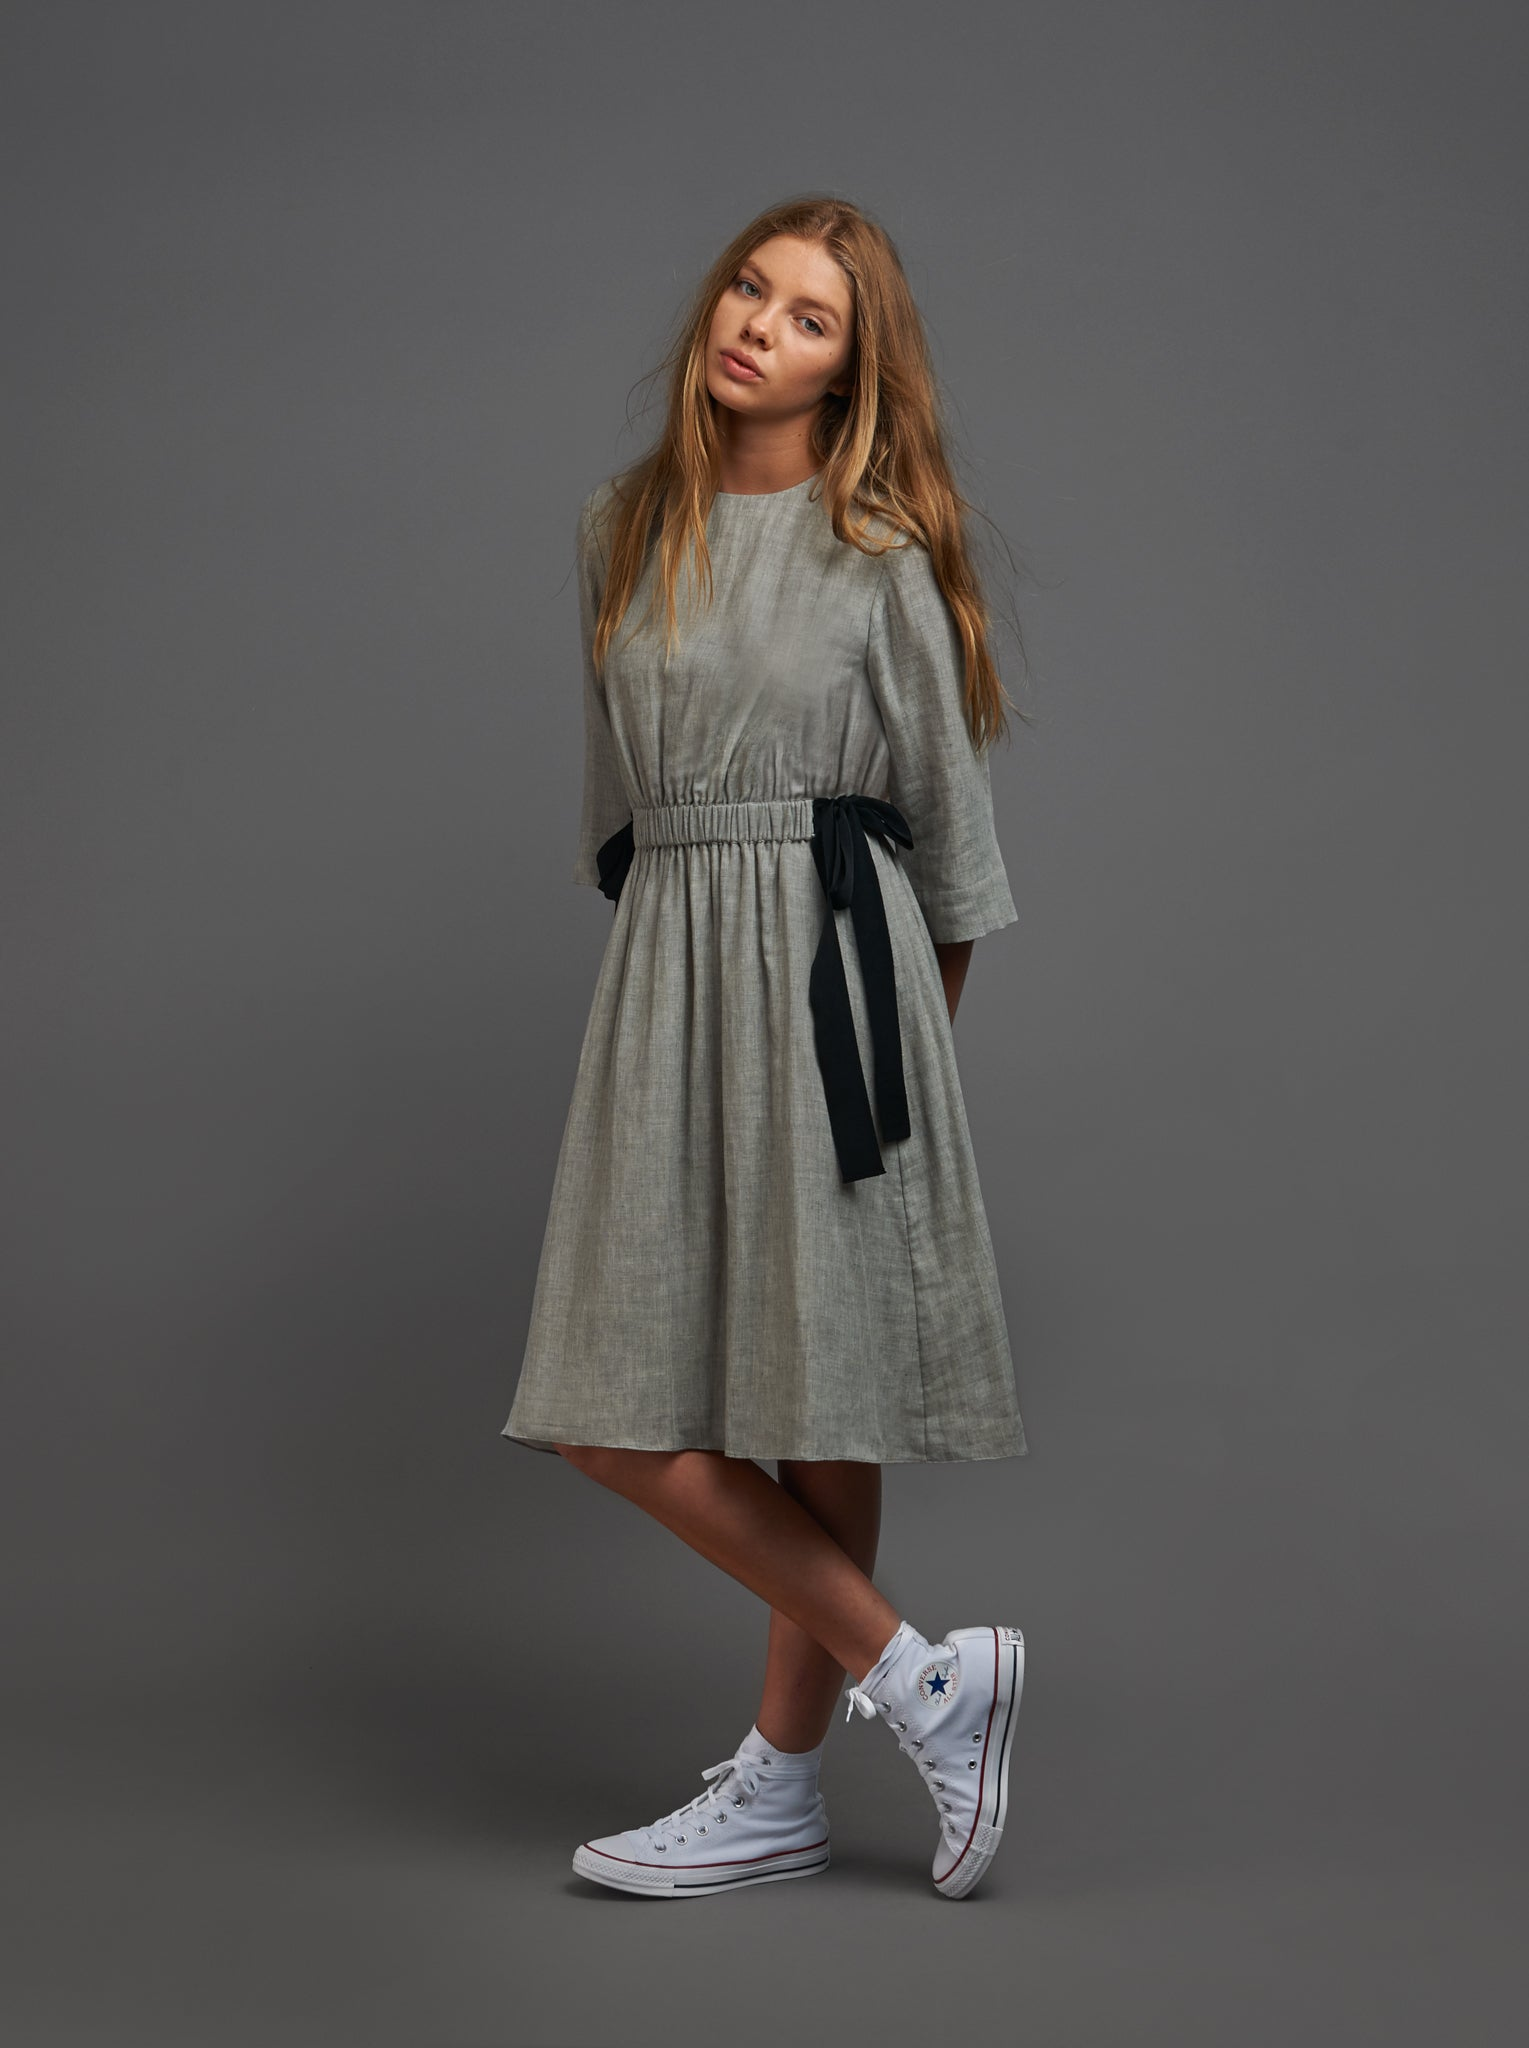 Grey Dress with Black Bows